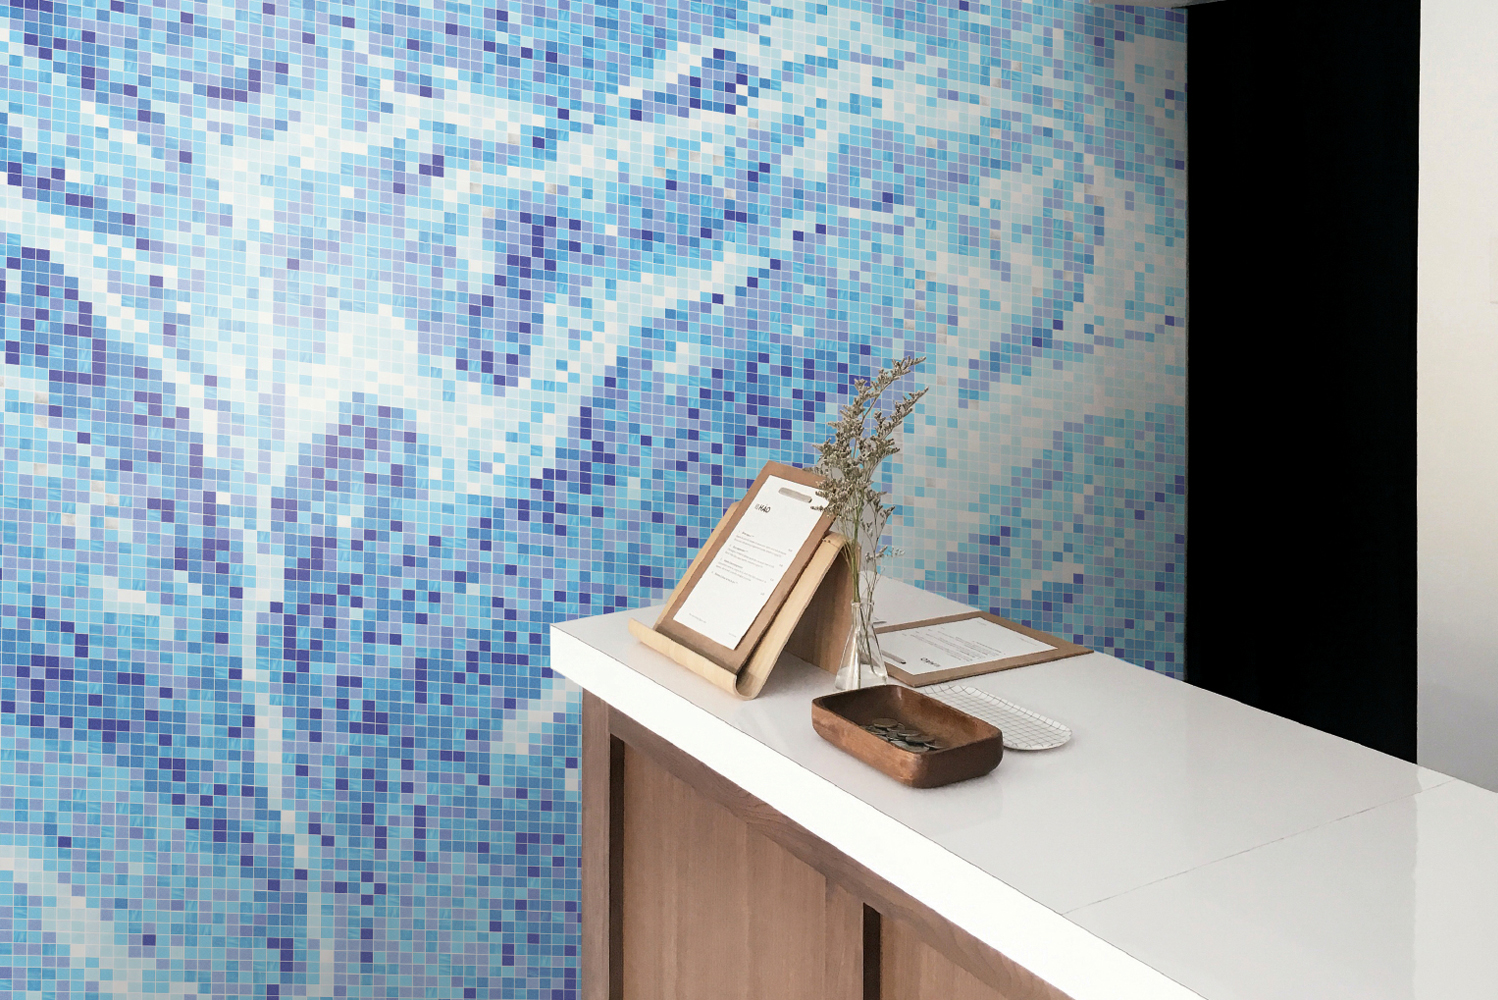 Artaic launched the latest addition to its SPLASH! Collection of fluid-inspired mosaics: Emulsion.